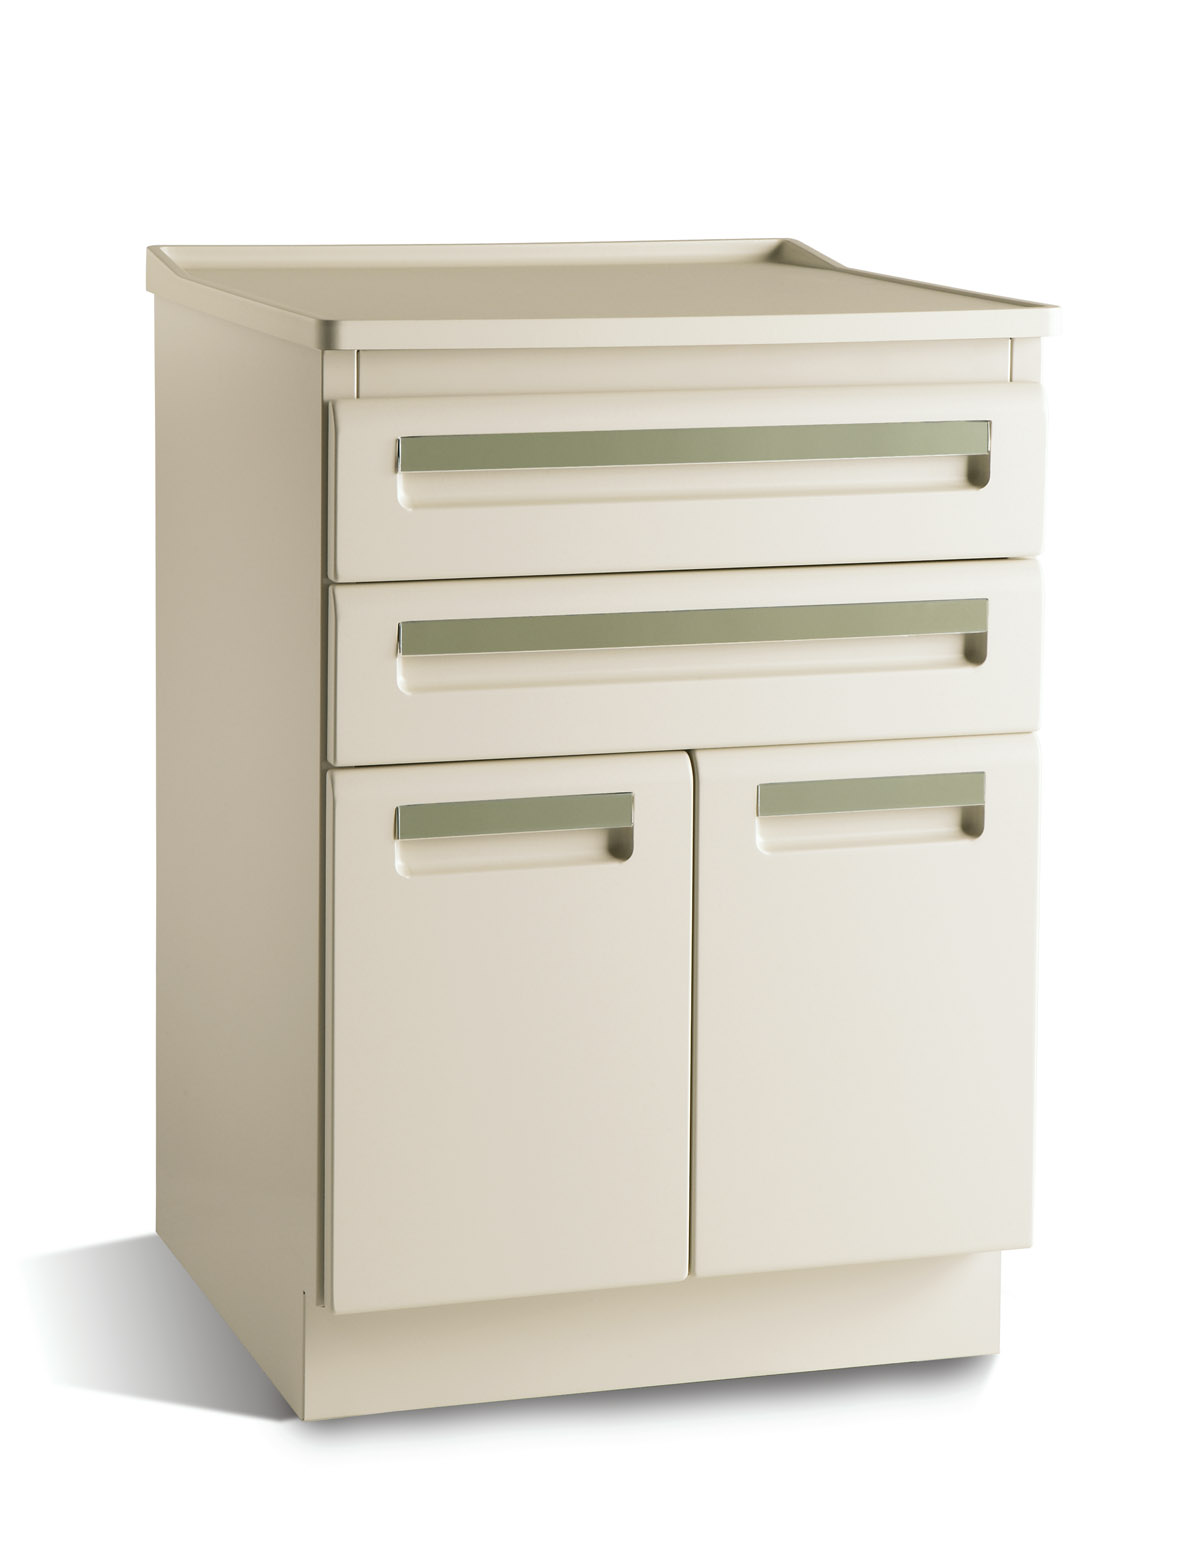 CABINET, TREATMENT, 24x18, 2 DR/2 DRW, CLAY